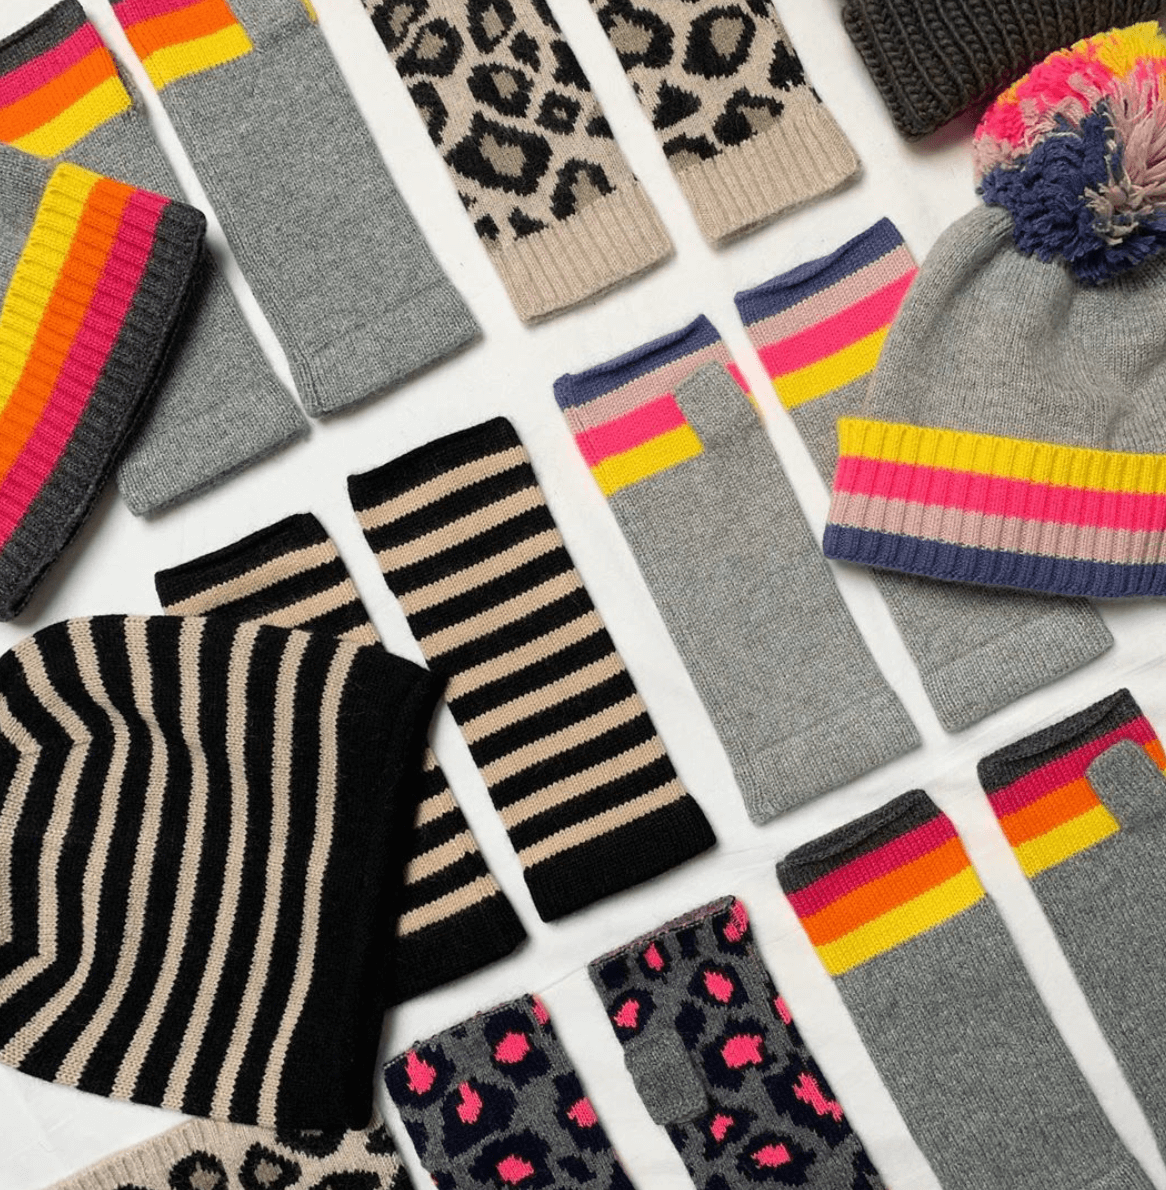 Patterned Beanie & Socks | The Mustcard